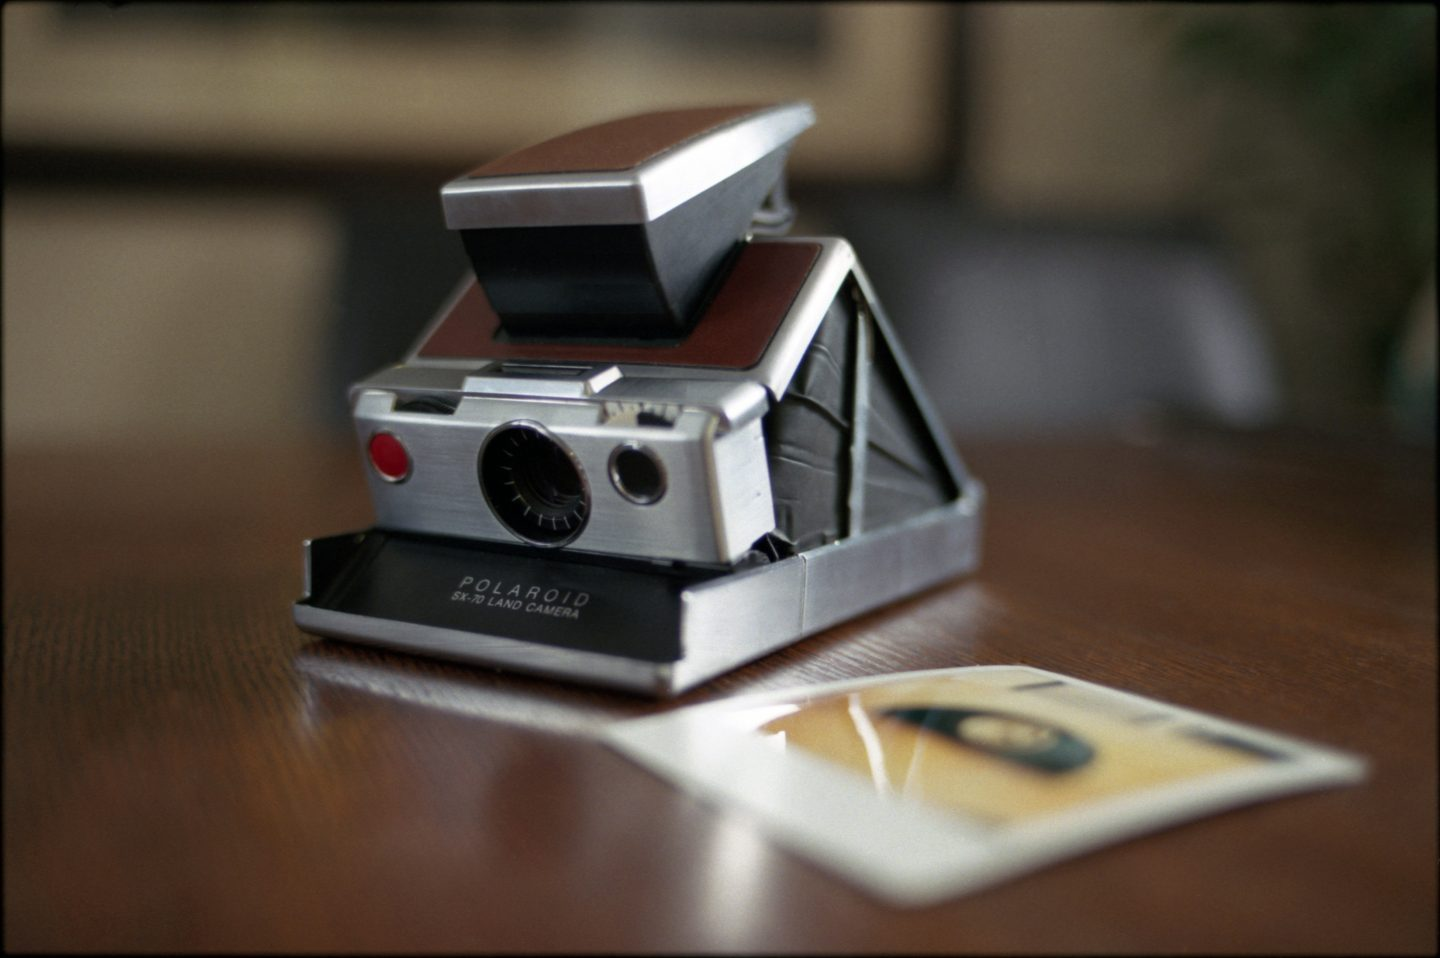 365-30 Polaroid SX-70 Land Camera